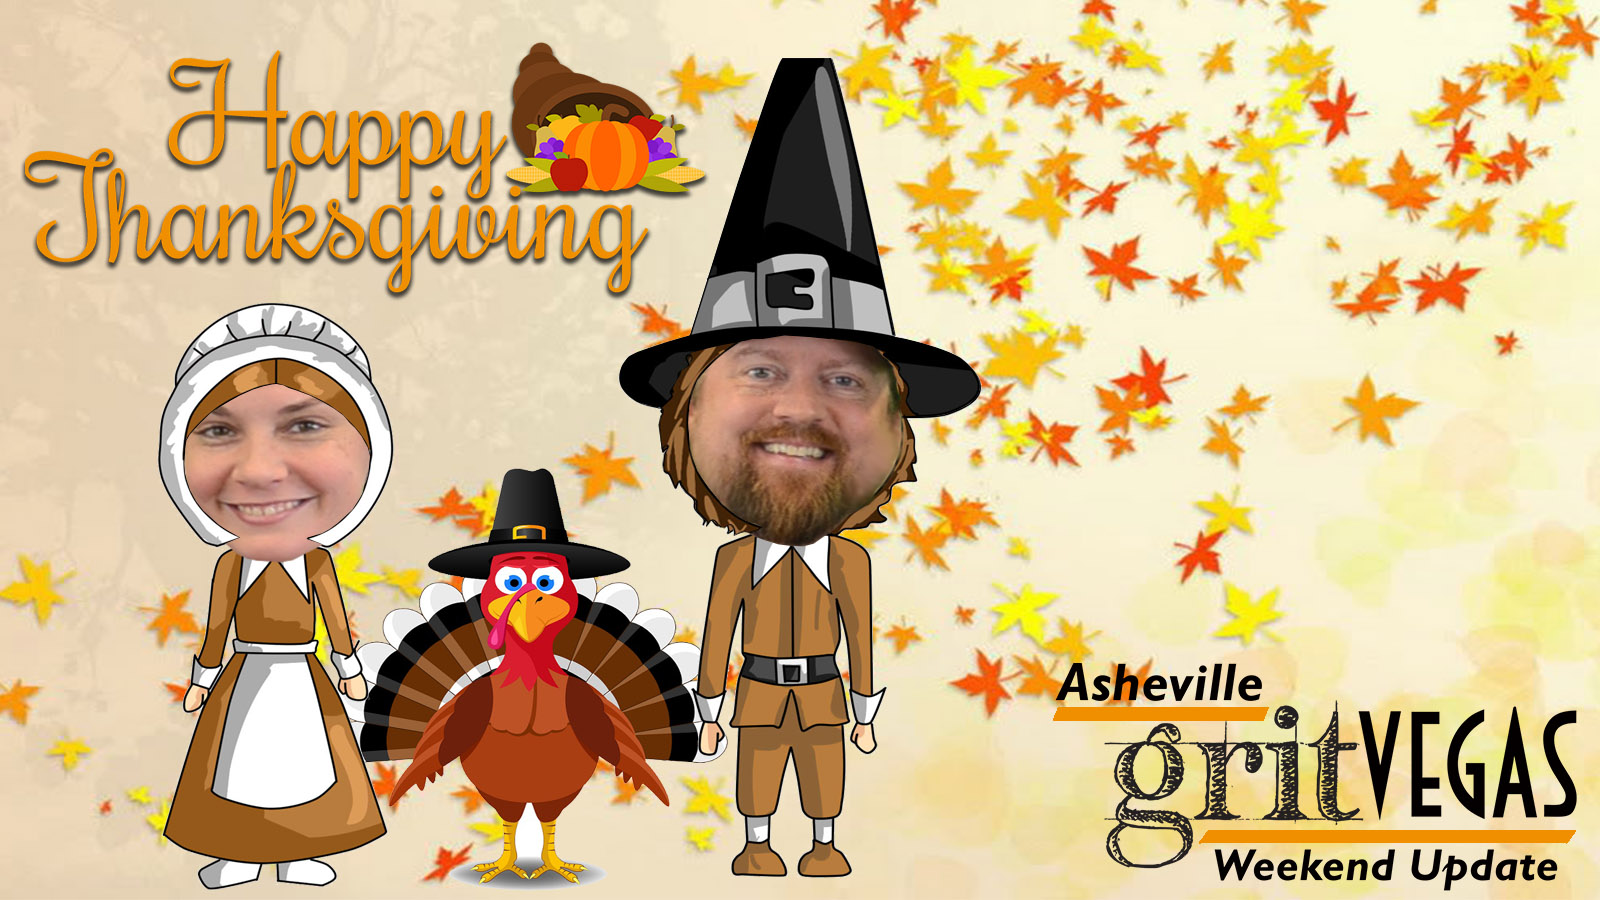 GritVegas Weekend Update -Turkey Style!